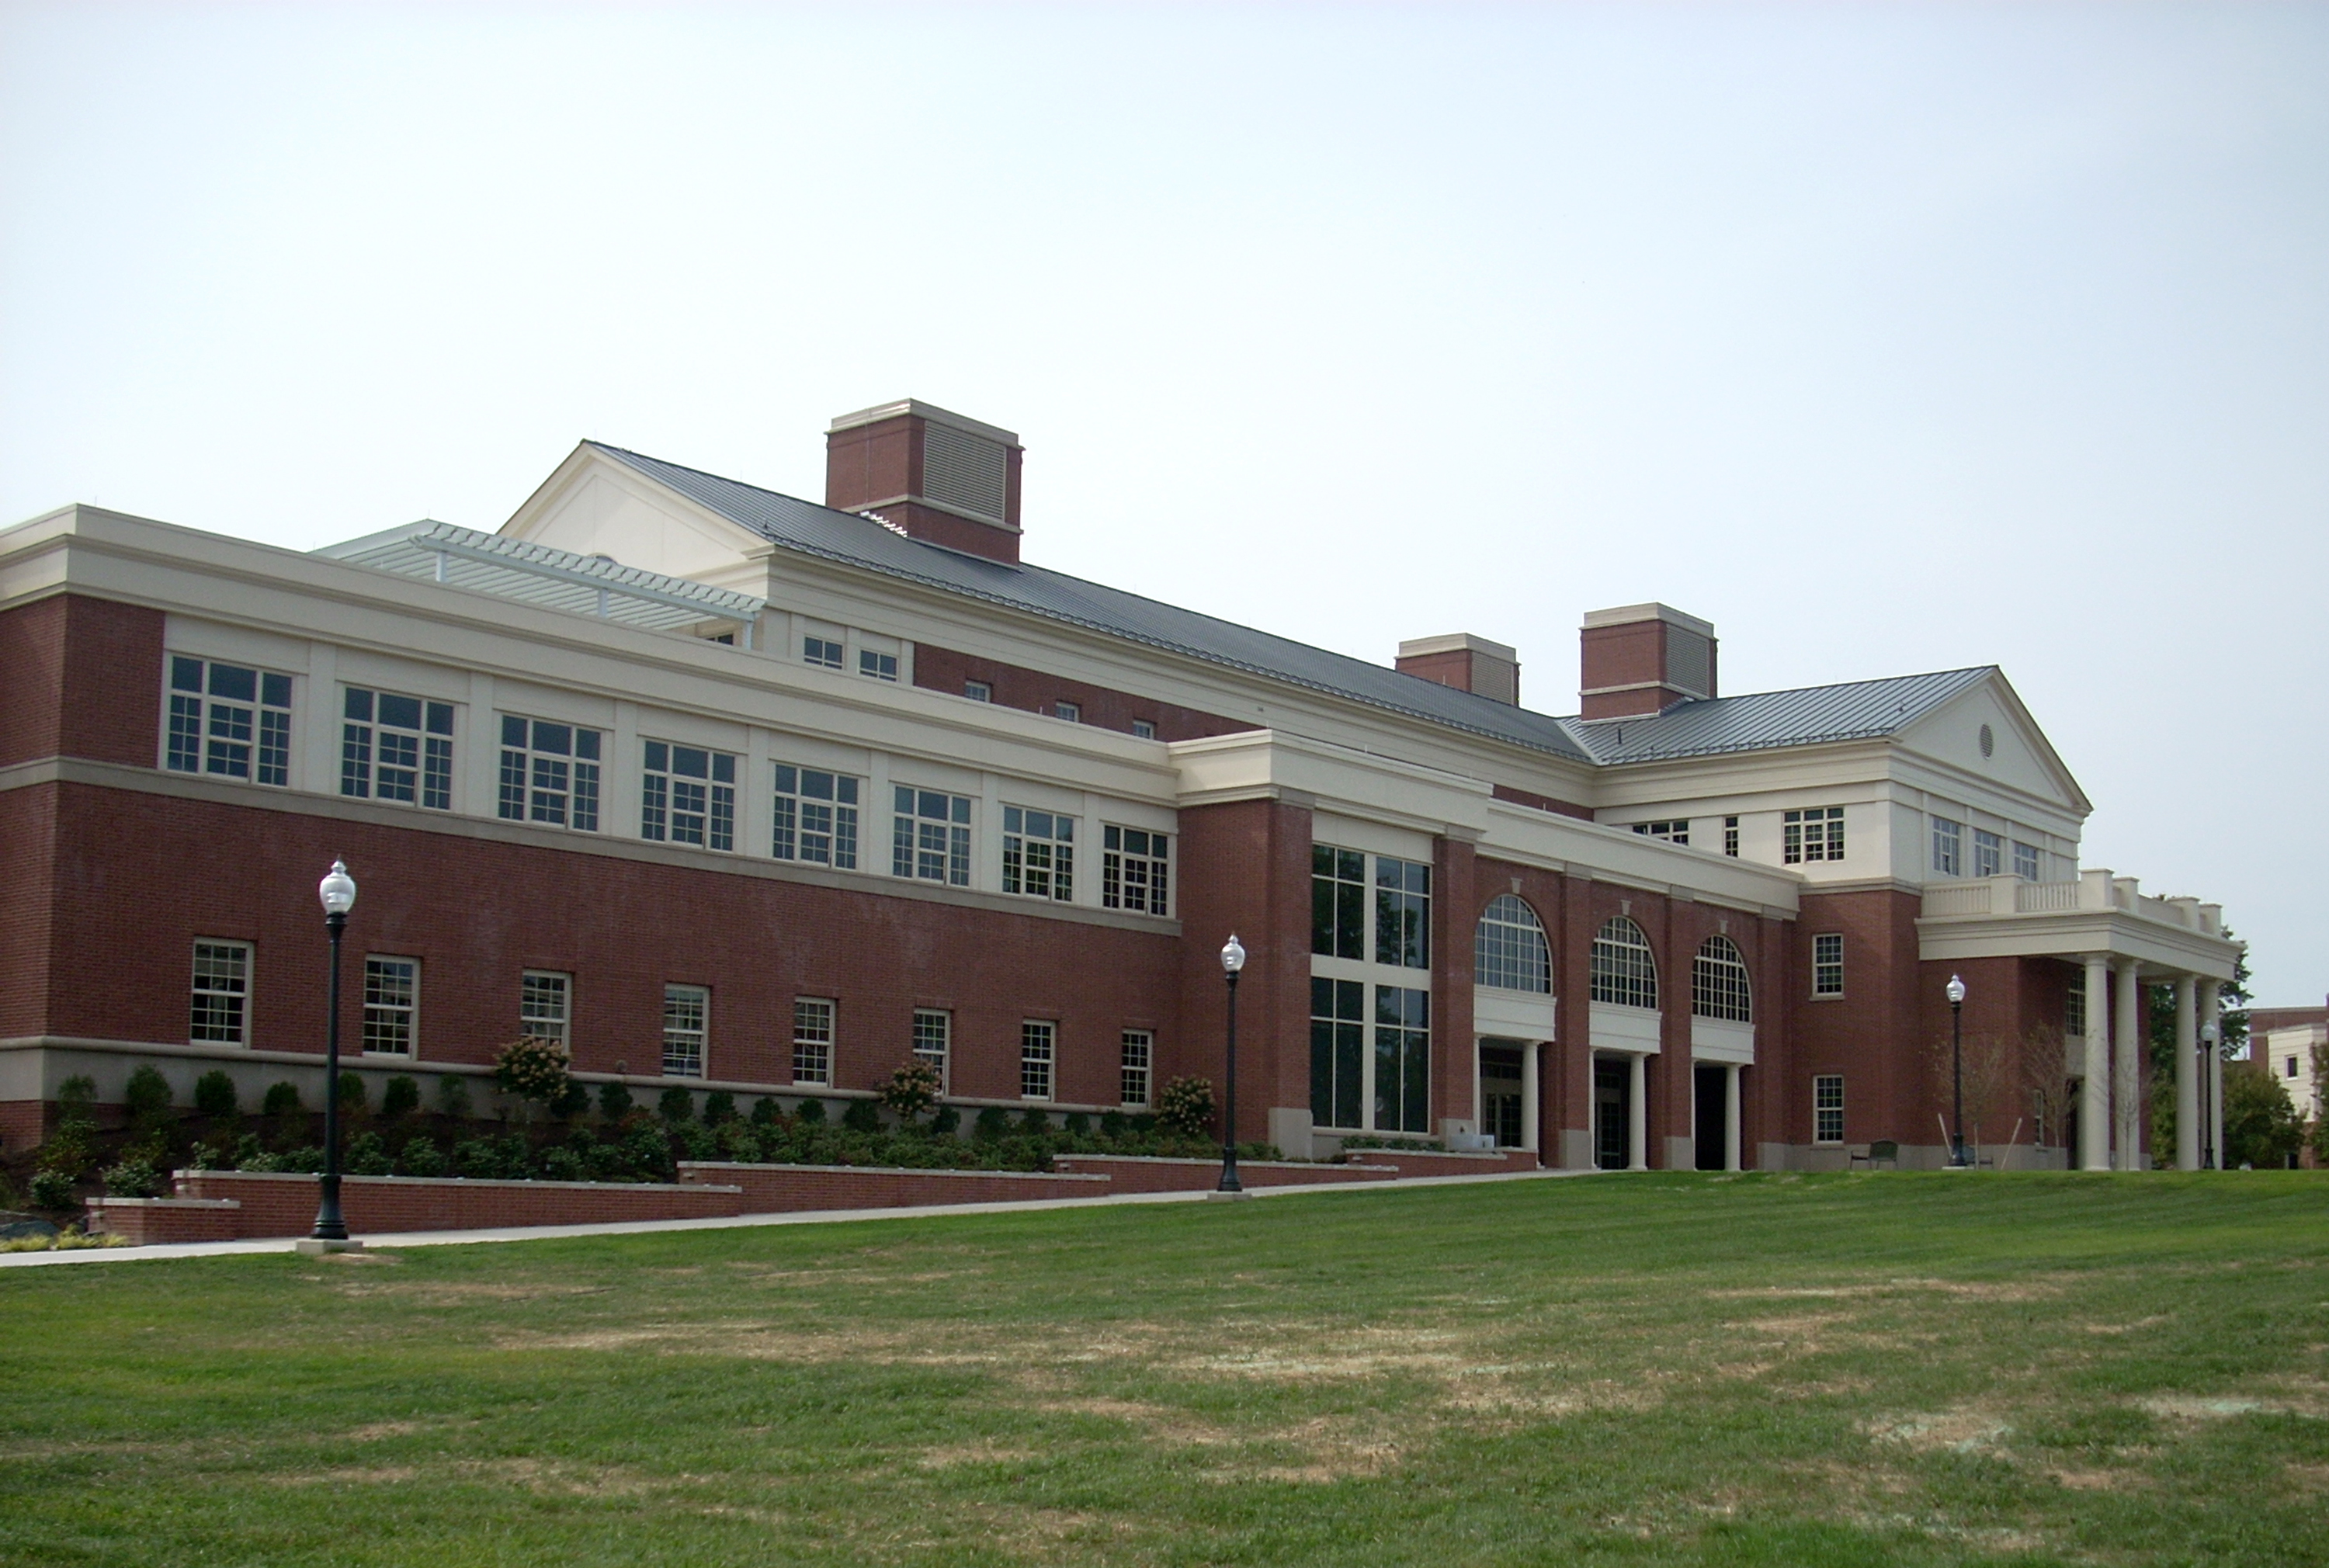 The outside of the completed Academic West building at Bucknell University.